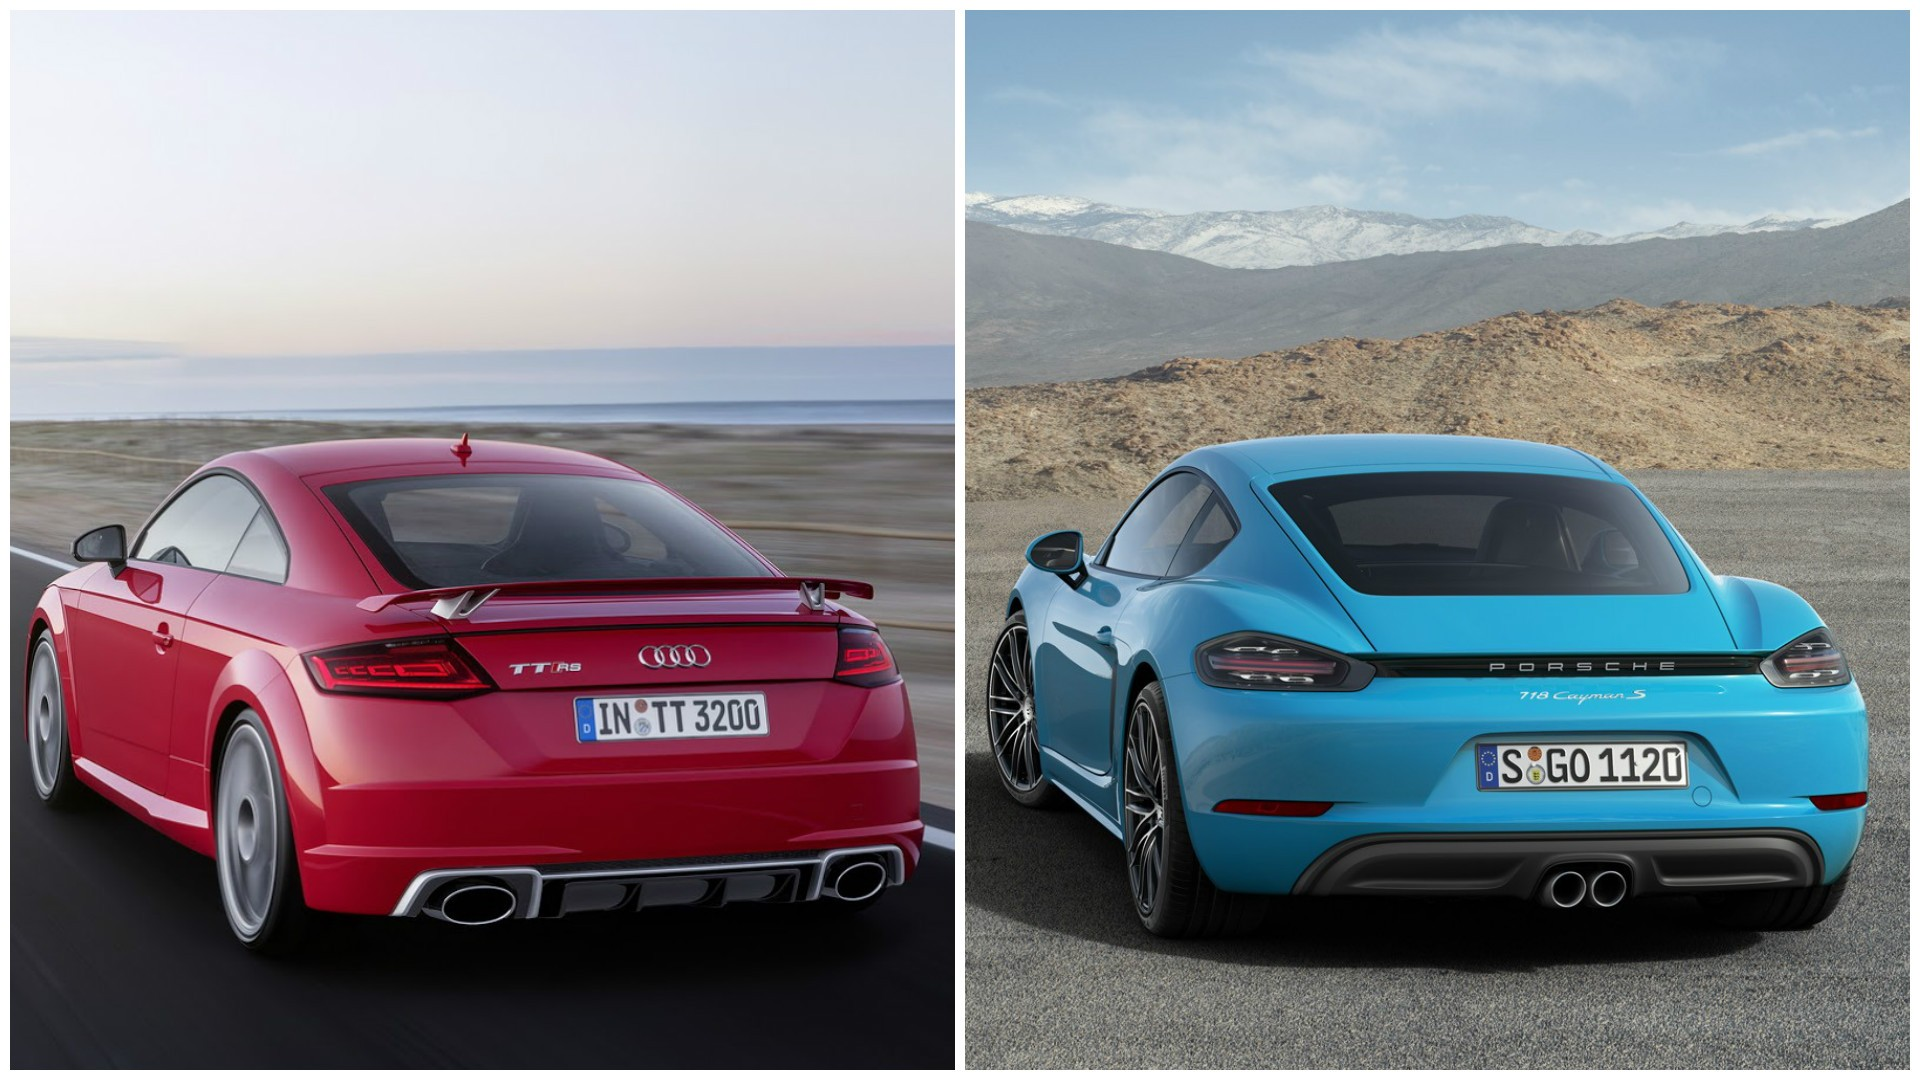 2017 Audi Tt Rs Vs Porsche 718 Boxster And 718 Cayman